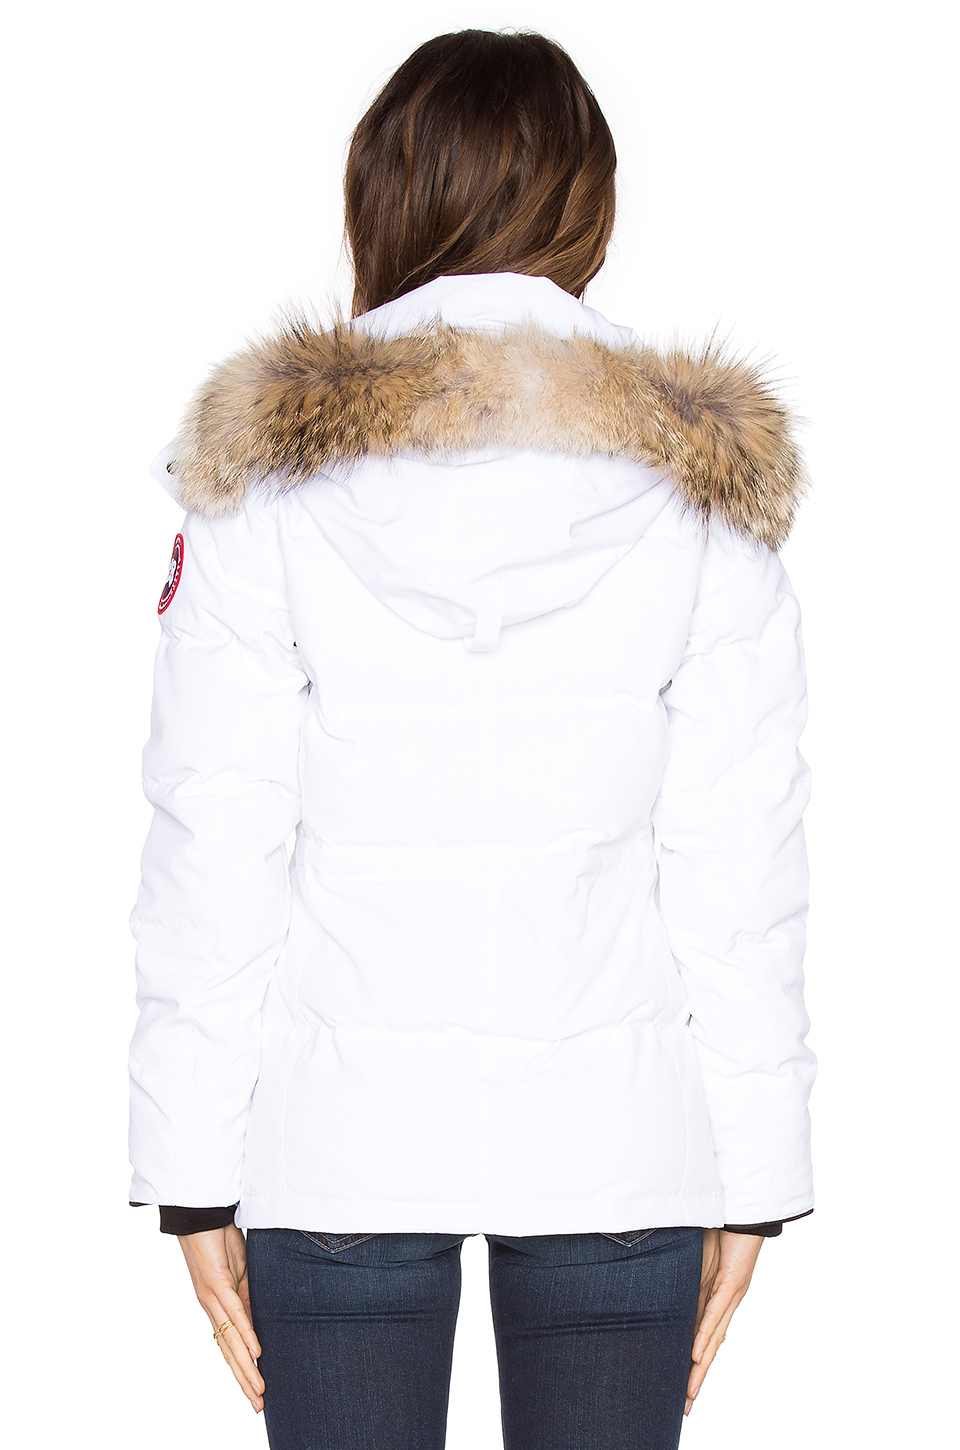 Jackets & Long Coats for Women A bebe jacket or coat is the ultimate essential for bringing together your bebe look. With flattering peplum jackets, women's trench coats, faux fur, leather moto jackets and more, bebe is a top designer of fabulous, statement-making outerwear.